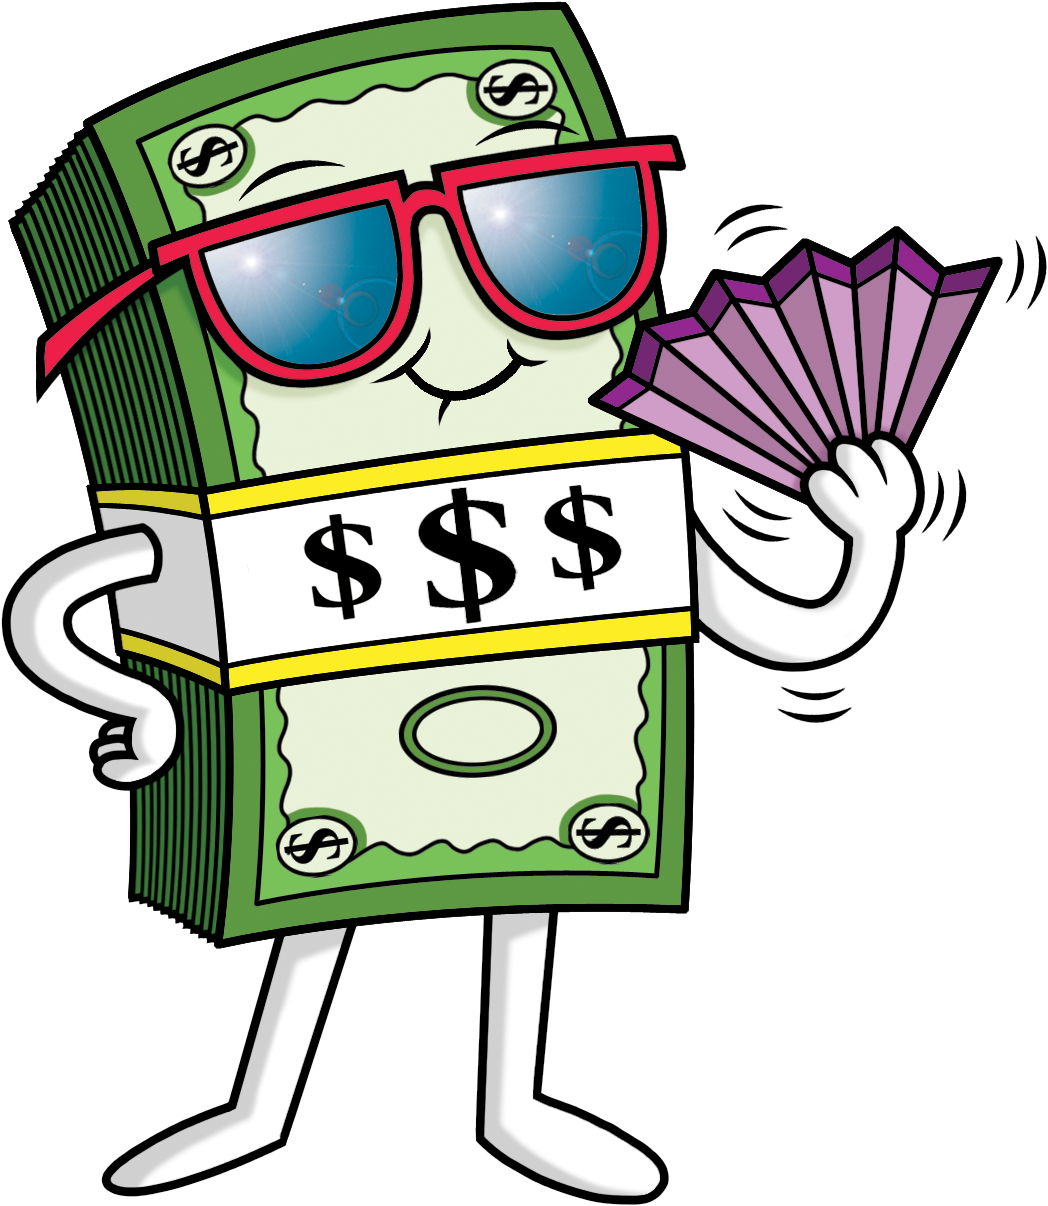 Clip art Dollar Illustration Cartoon Glasses.